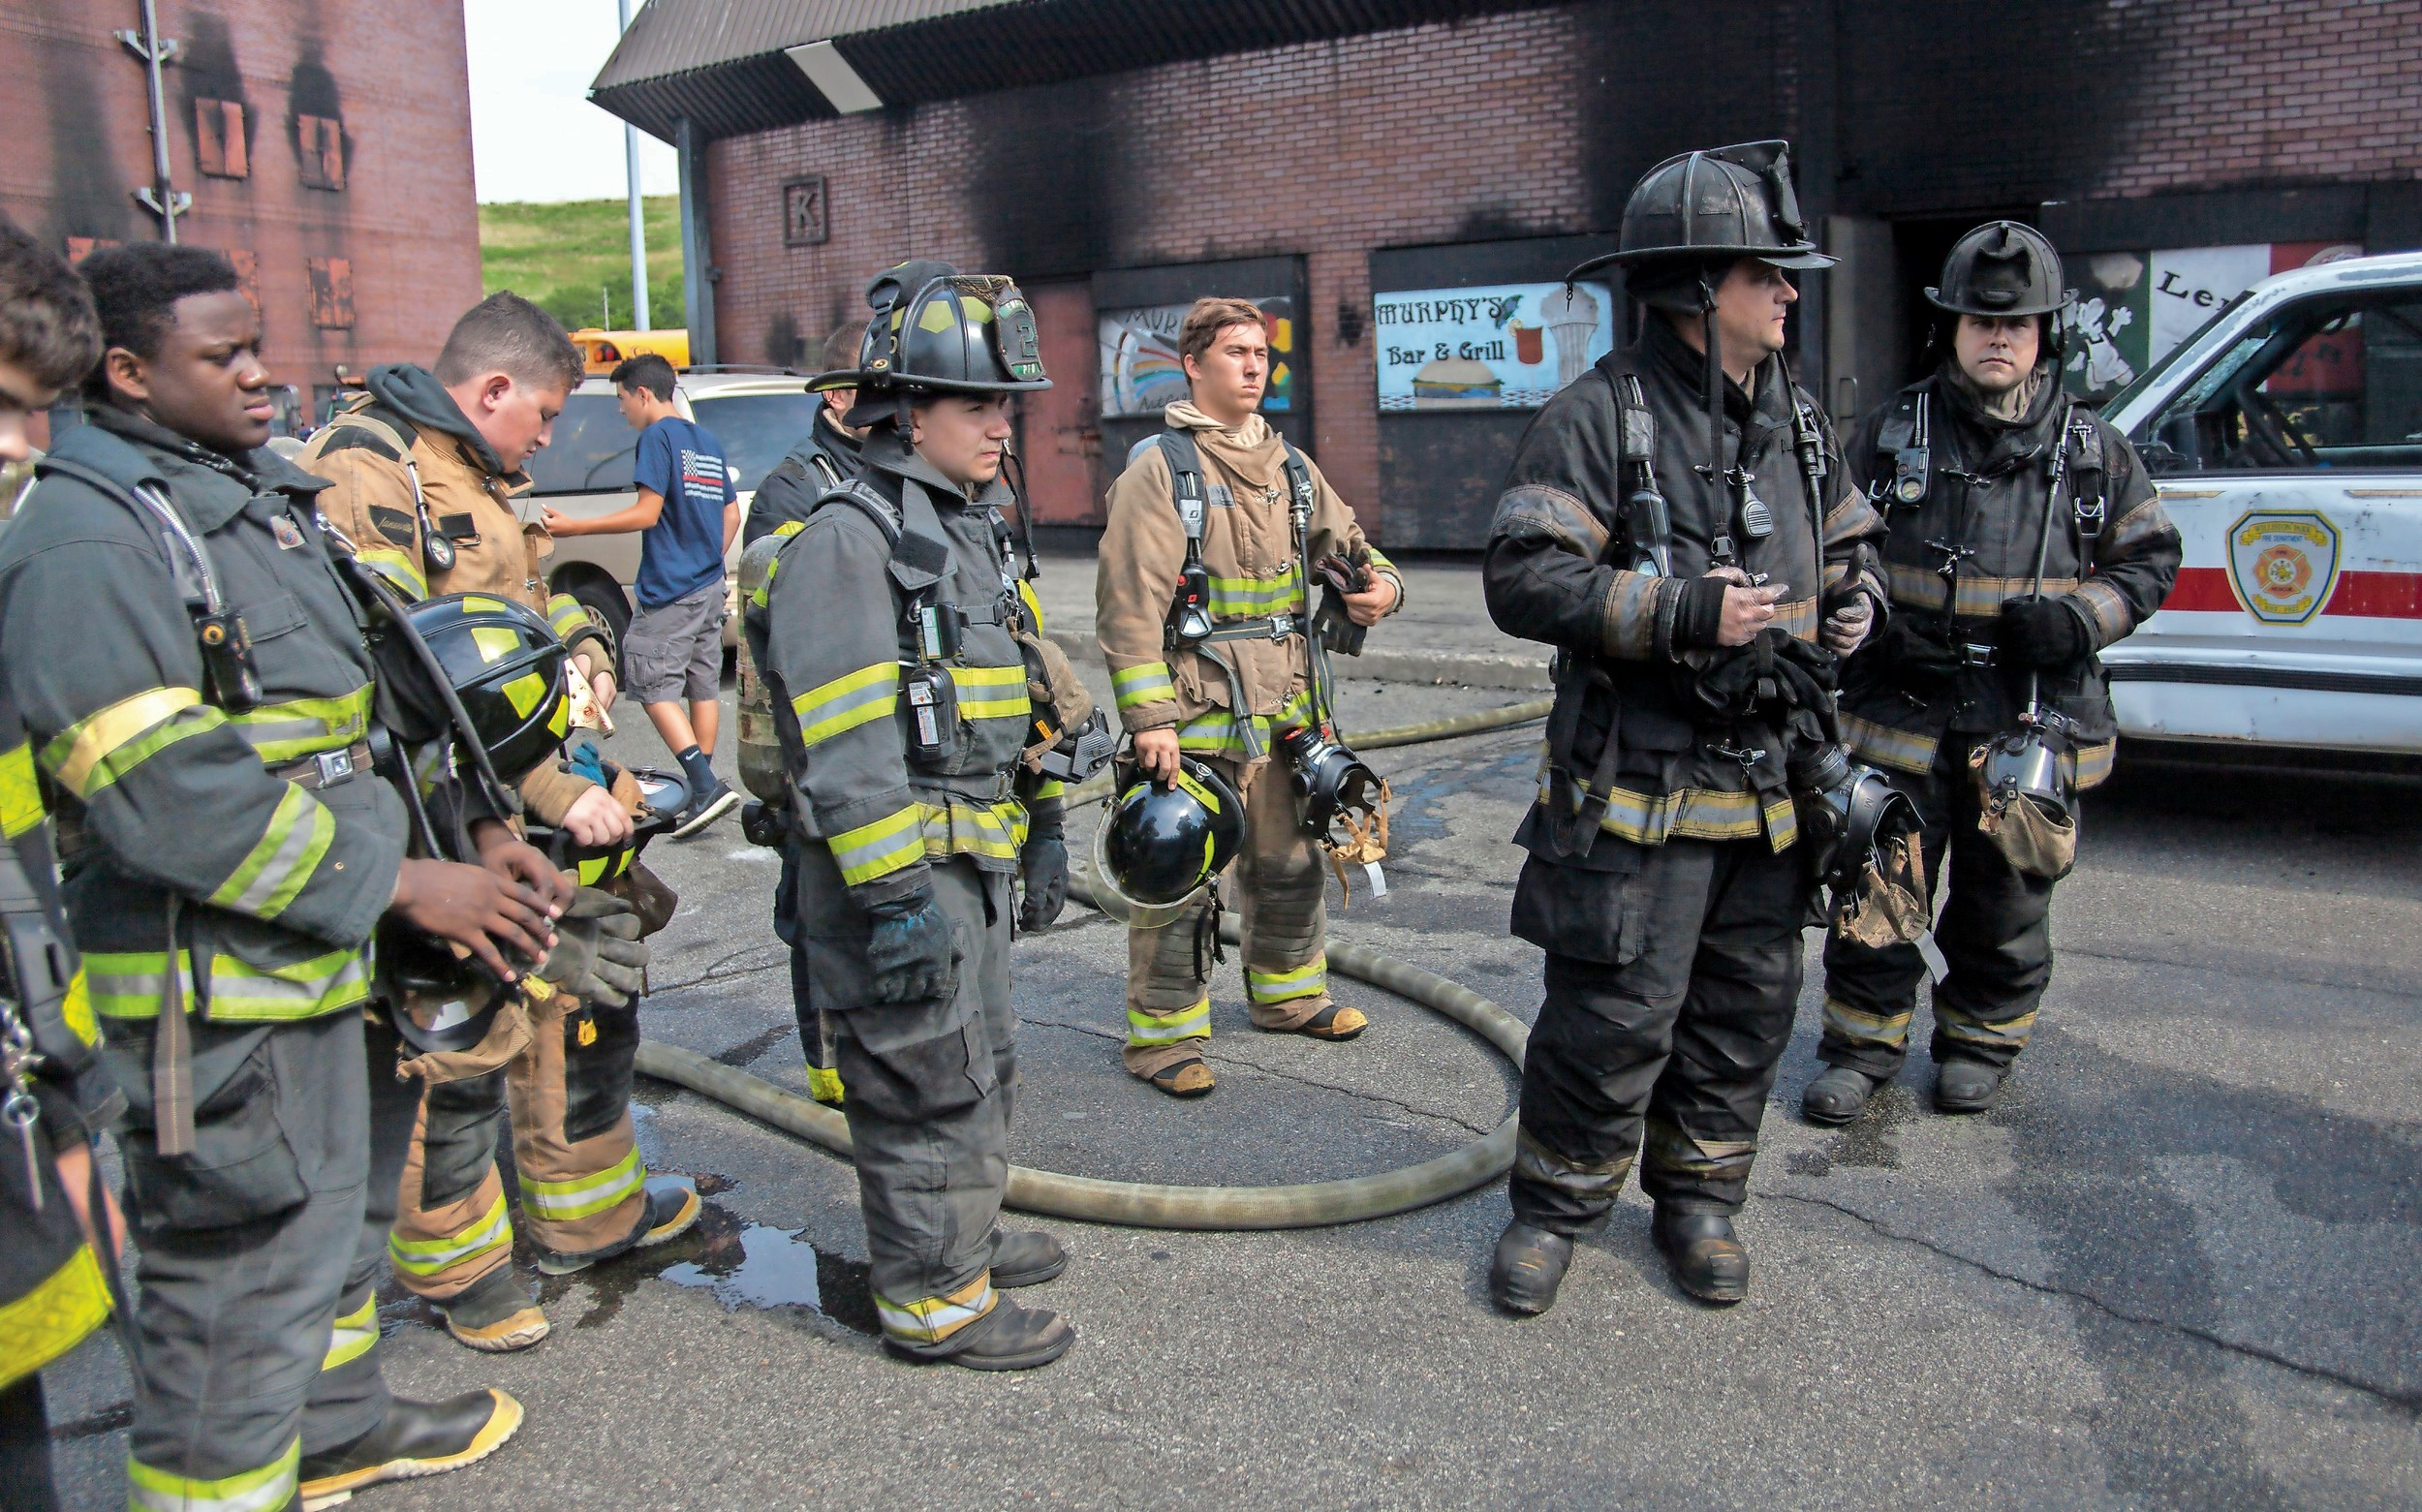 The fire camp in Old Bethpage is the only remaining facility in Nassau County that still uses real fire during training sessions.